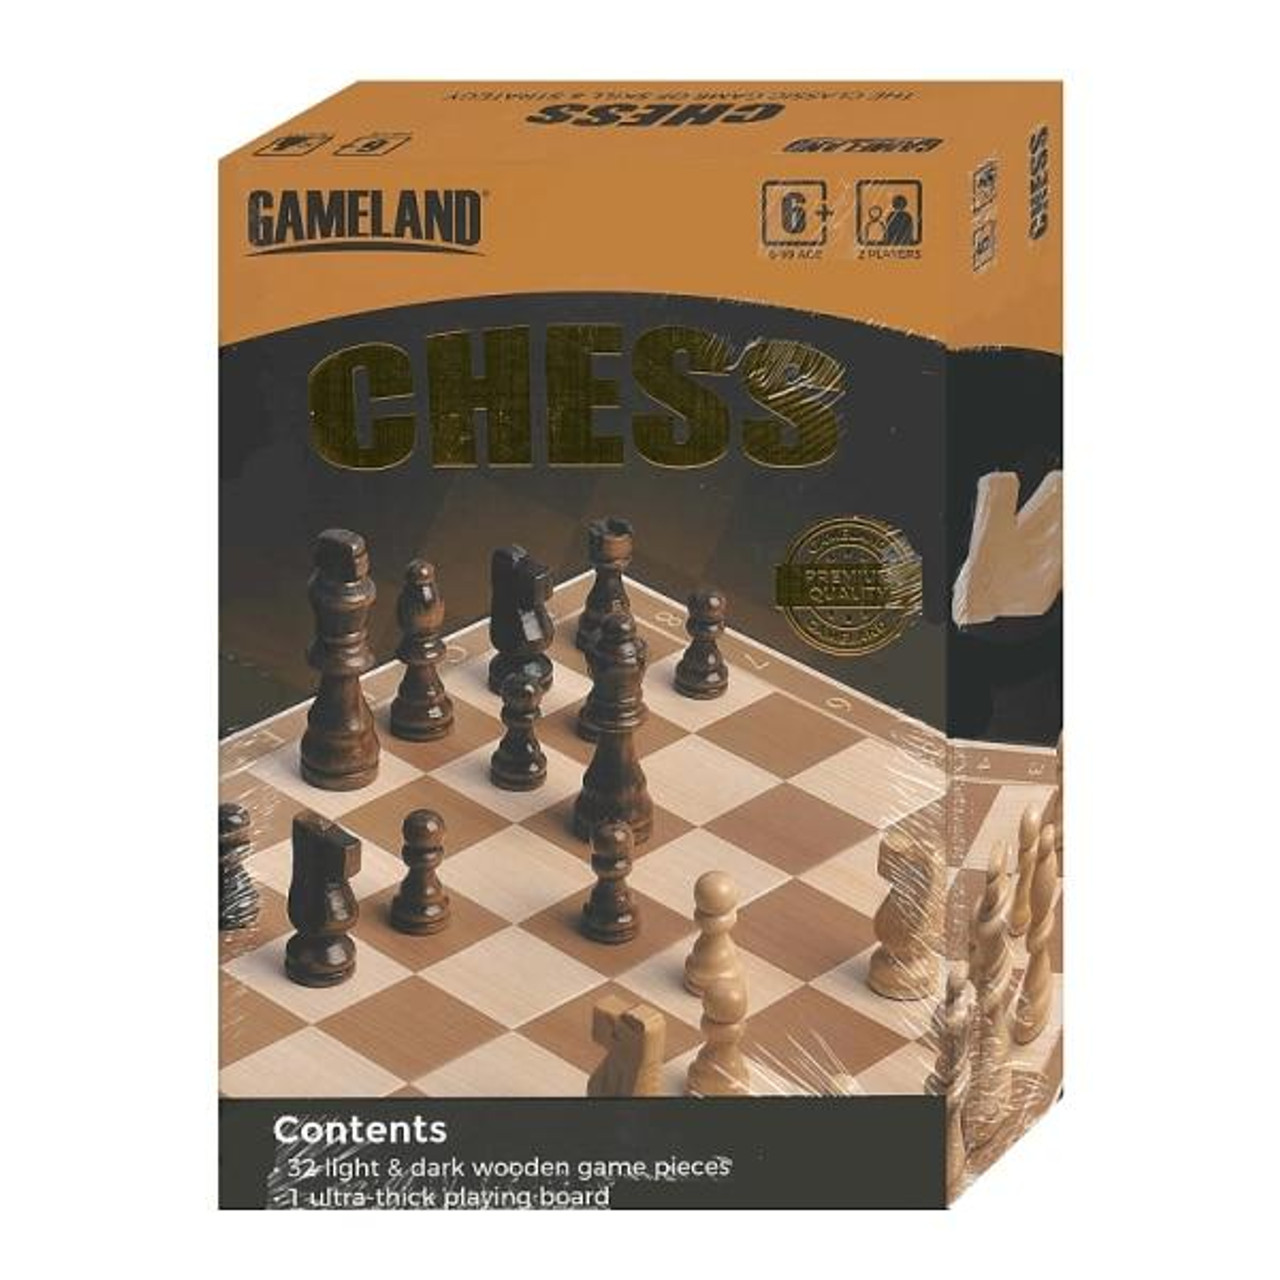 Gameland Chess by Gameland